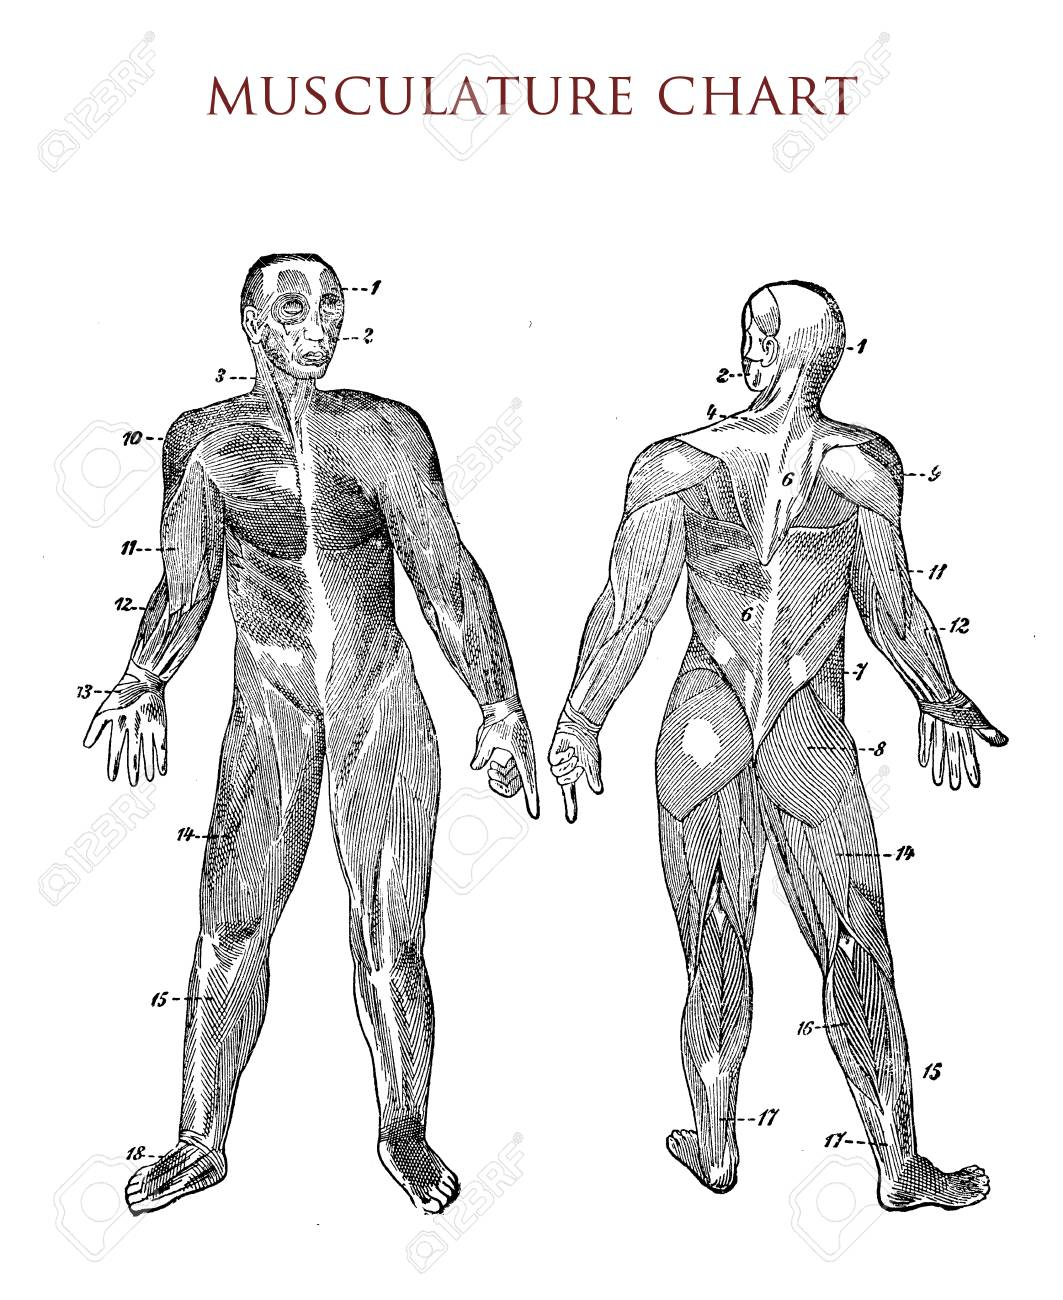 Human Body Muscle Chart Vintage Illustration Stock Photo Picture